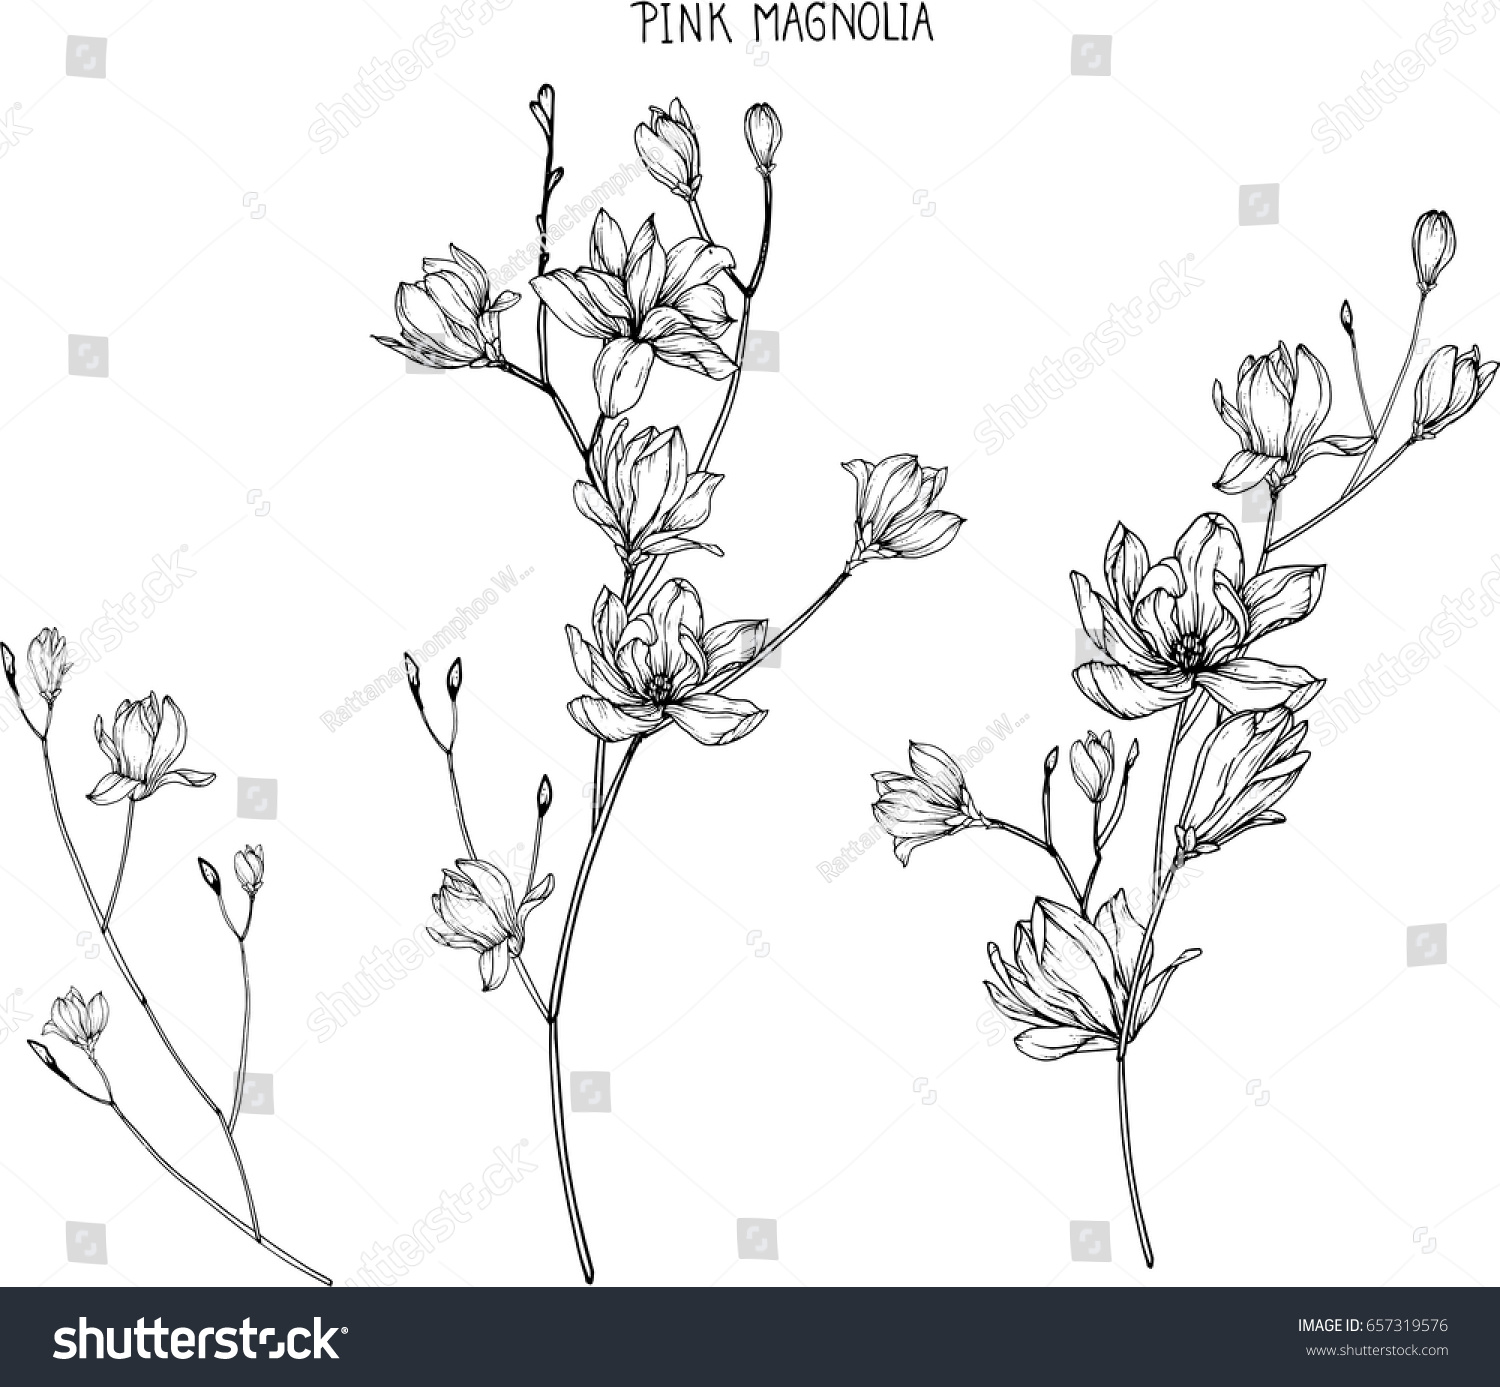 Pink magnolia flowers drawing and sketch with line-art on white backgrounds. #657319576